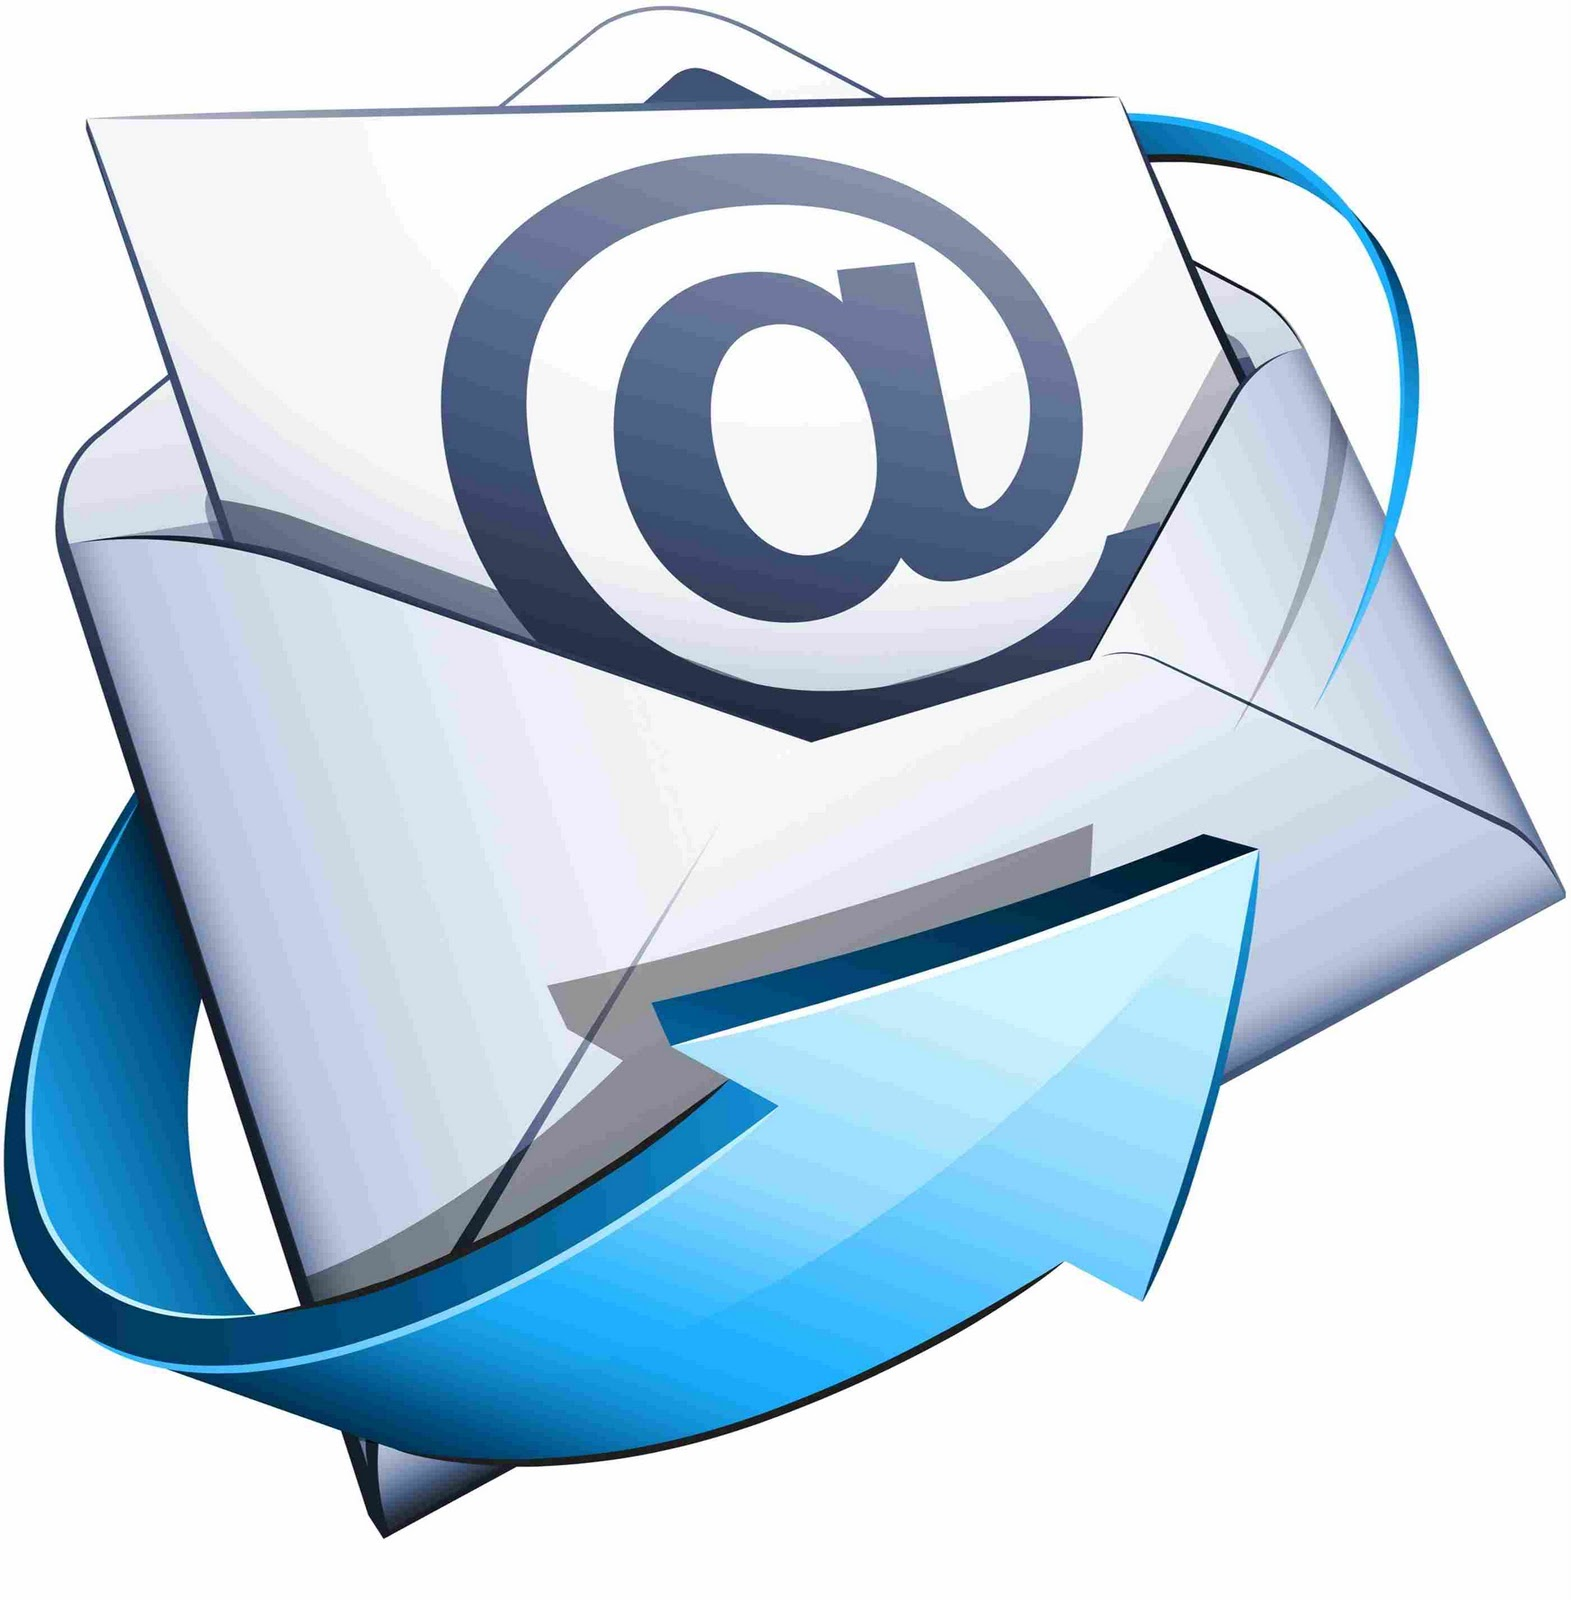 Trace An Email You Got Finding The Sender Of Email